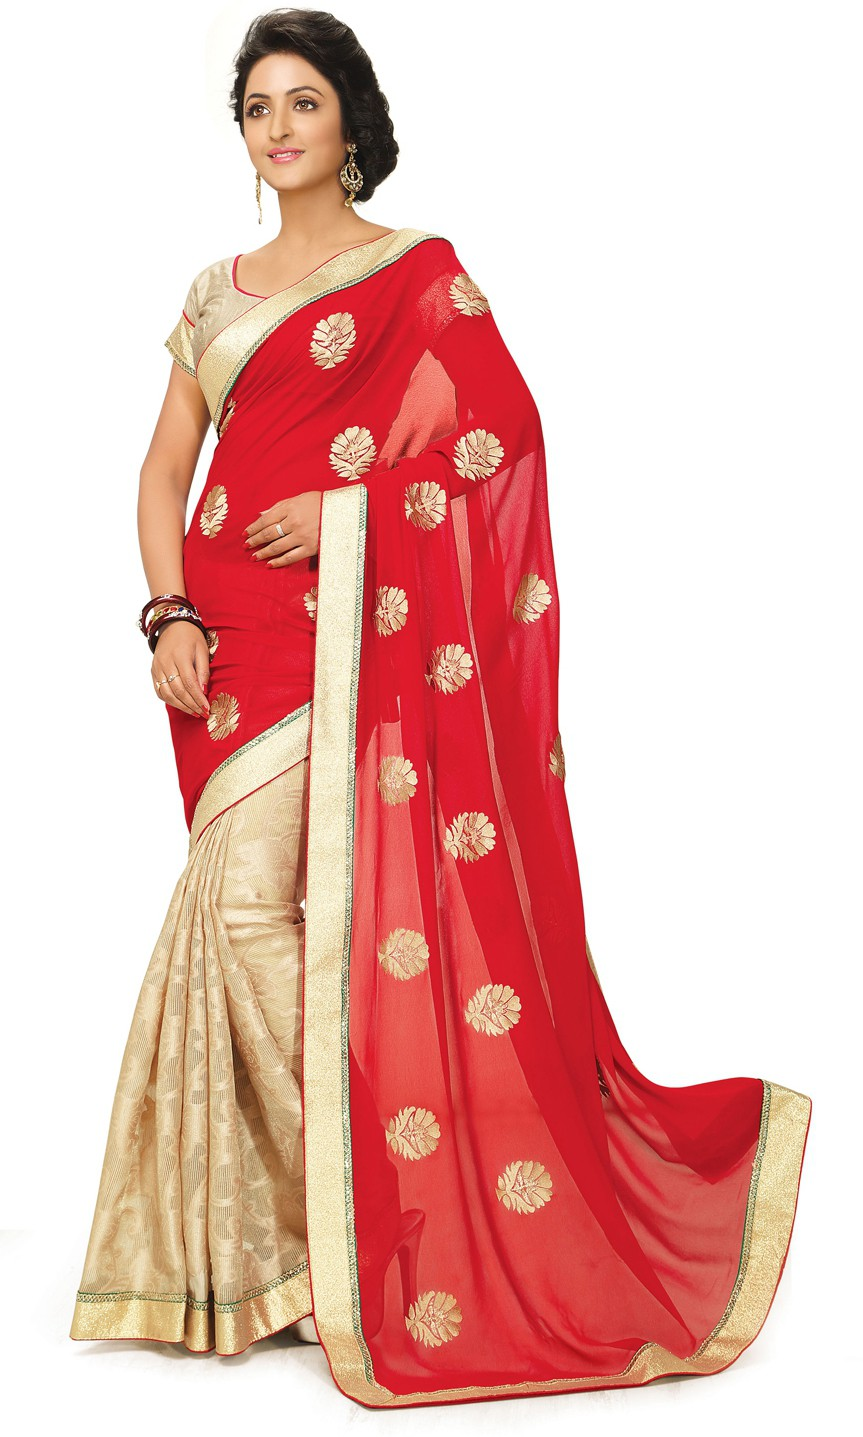 Indianbeauty Self Design, Embroidered Bollywood Georgette Sari(Red, Beige)